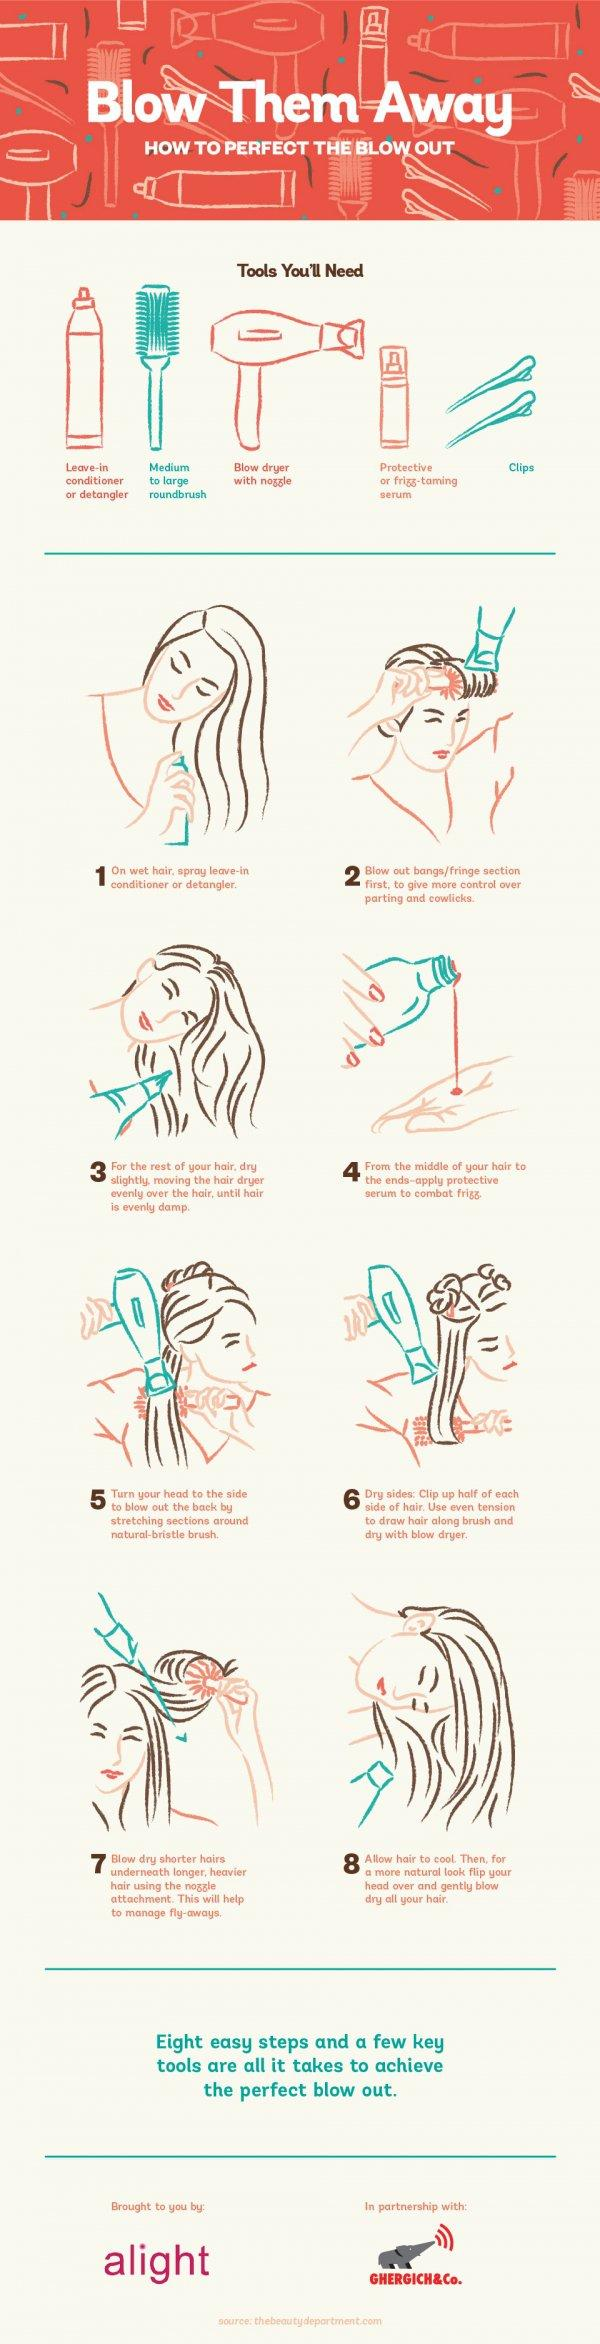 Get The Perfect Blow Out